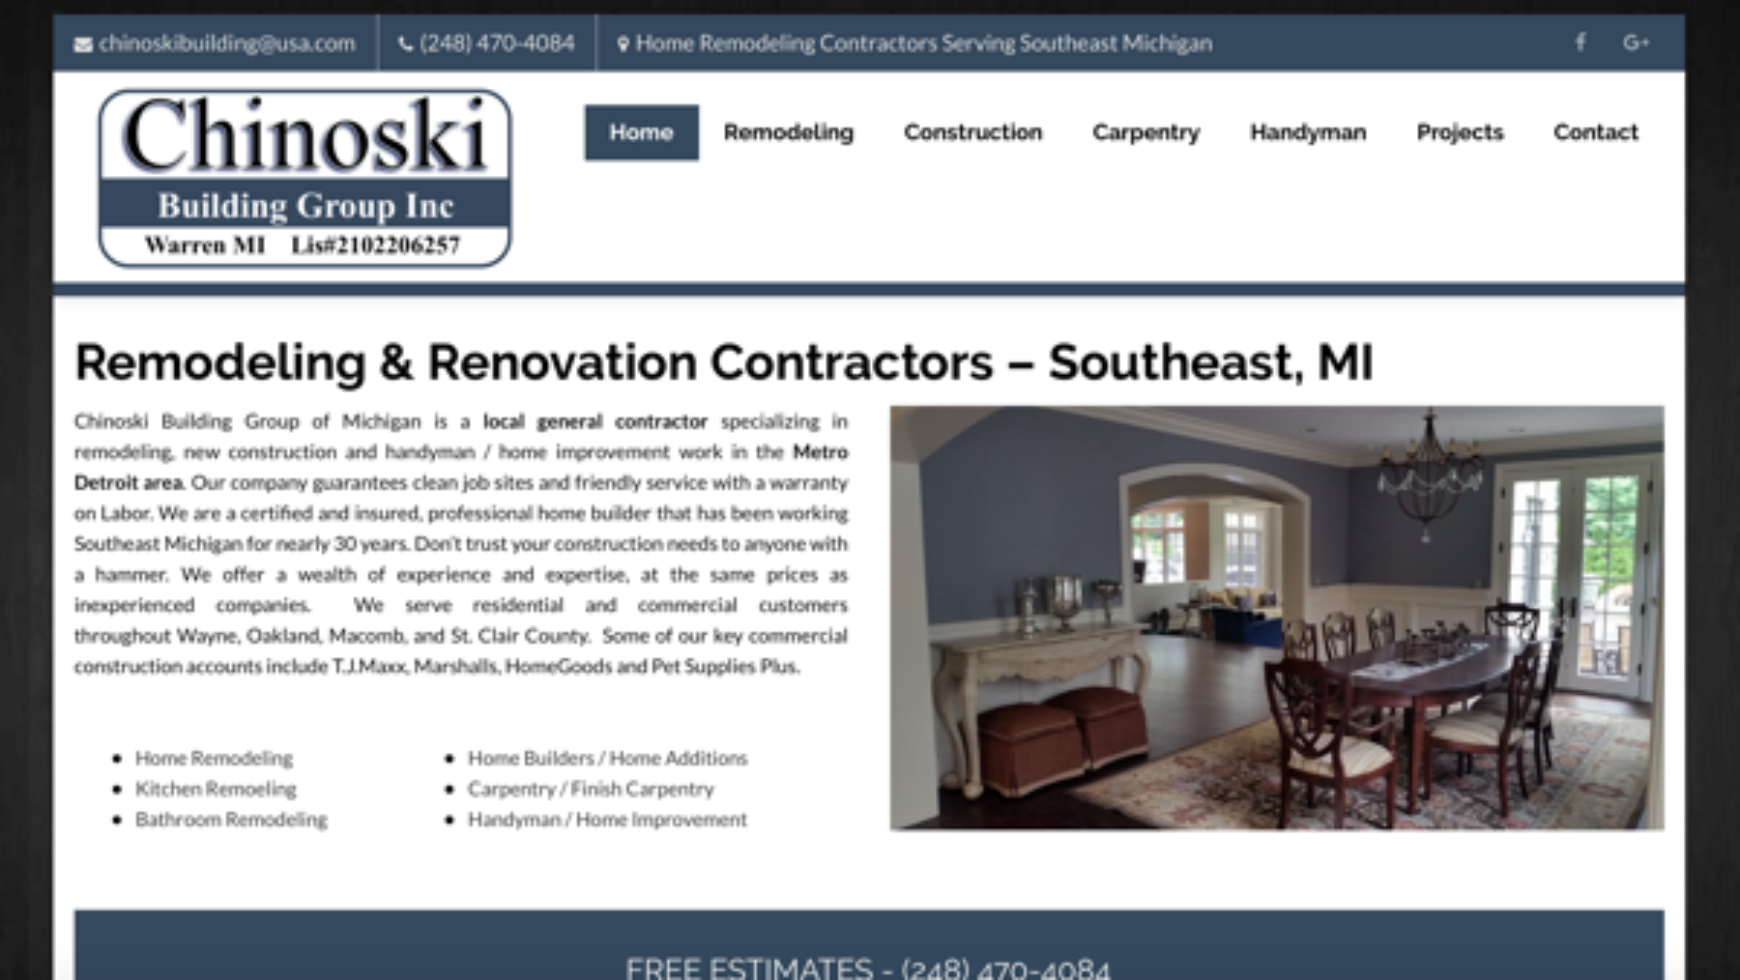 Home Improvement Contractor Website Archives - ContractorWeb on traditional country style designs, decorative painting designs, types of floor designs, dream home designs, eavestrough designs, event center designs, bookkeeping designs, deck enclosures designs, small home designs, youth camp designs, green energy designs, sign company designs, alf designs, credit designs, carpet store designs, senior assisted living designs, general home designs, the simpsons designs, flip or flop designs, farm ranch designs,